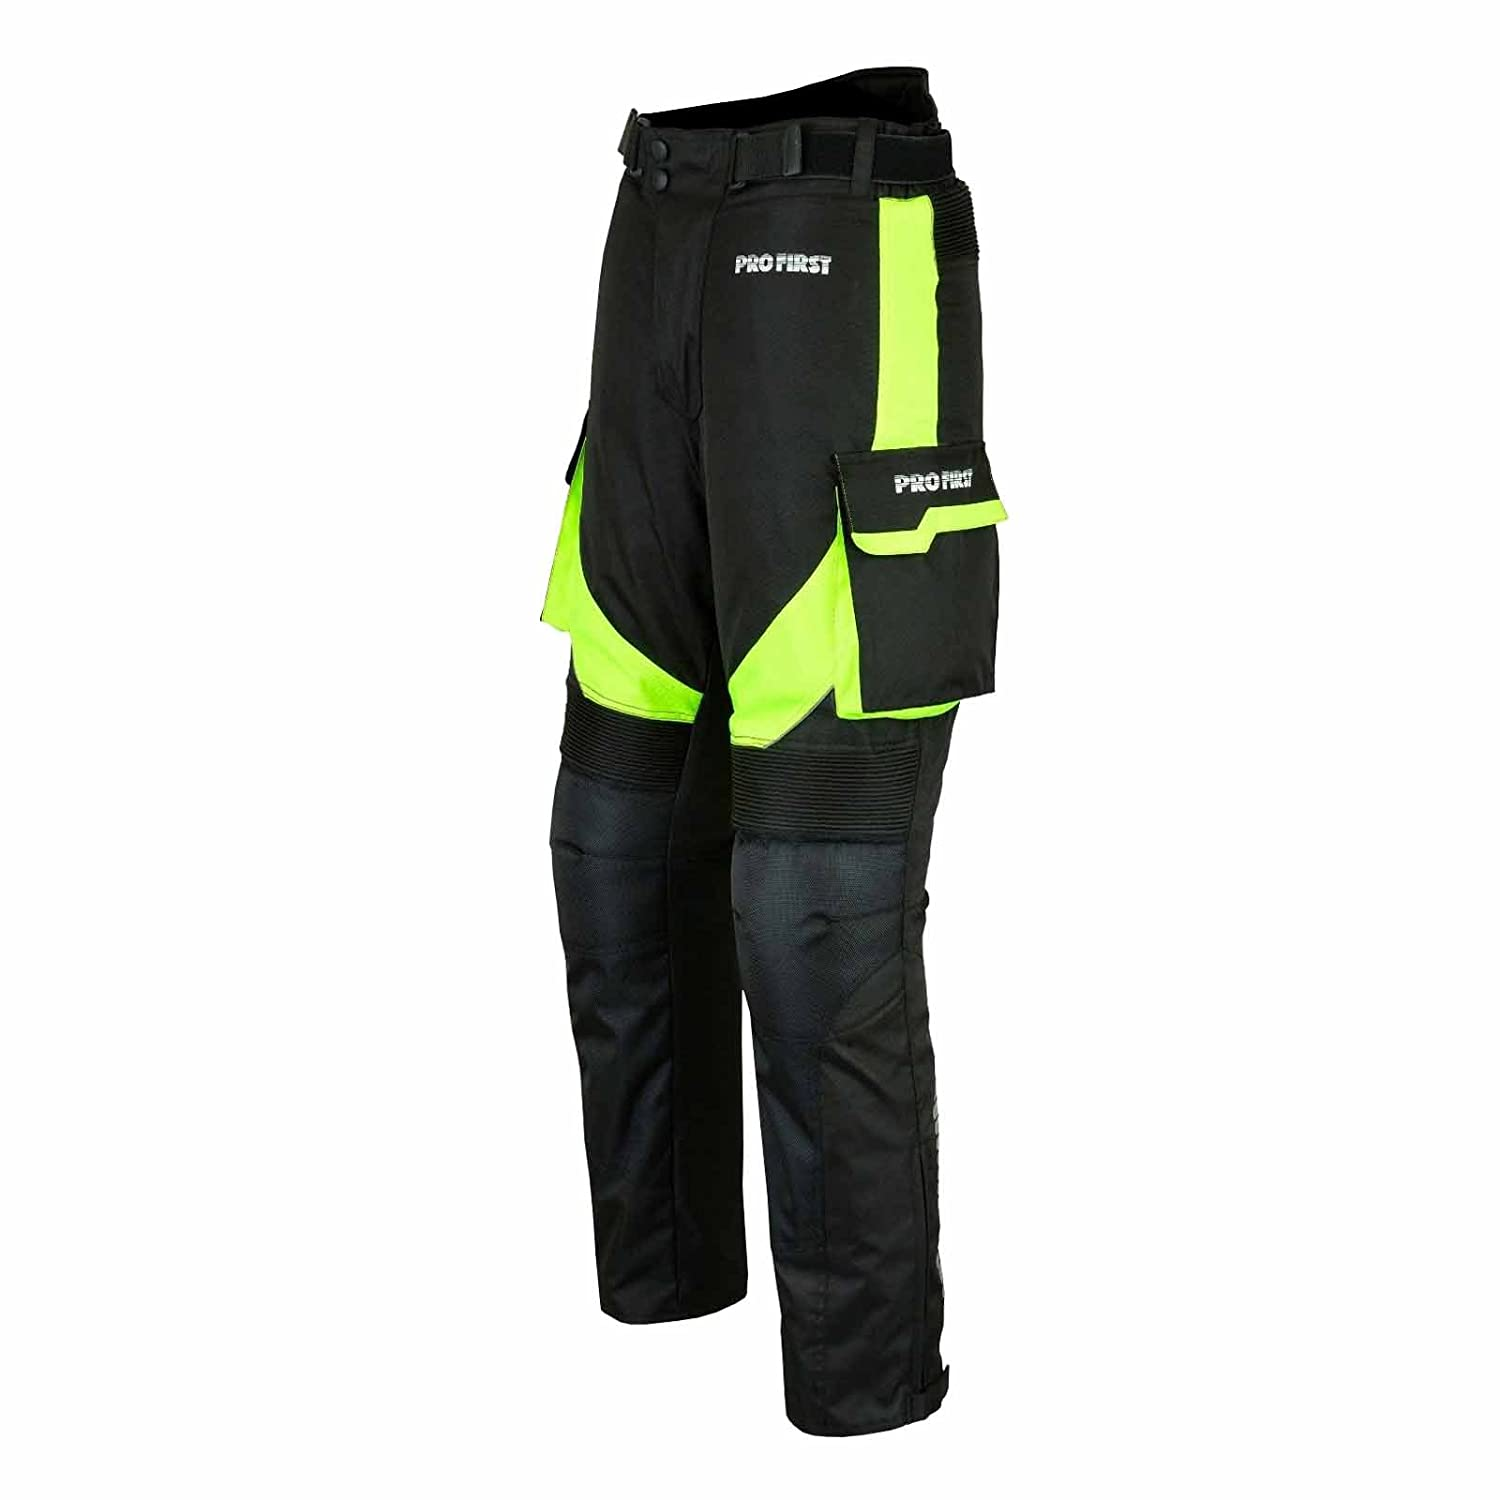 Green - XS to 4XL CE Approved Armoured Motorbike Motorcycle Trouser Pant Waterproof Removable Lining Big Pocket Design PROFIRST TR-001 Long Length Inside Leg 32 inch